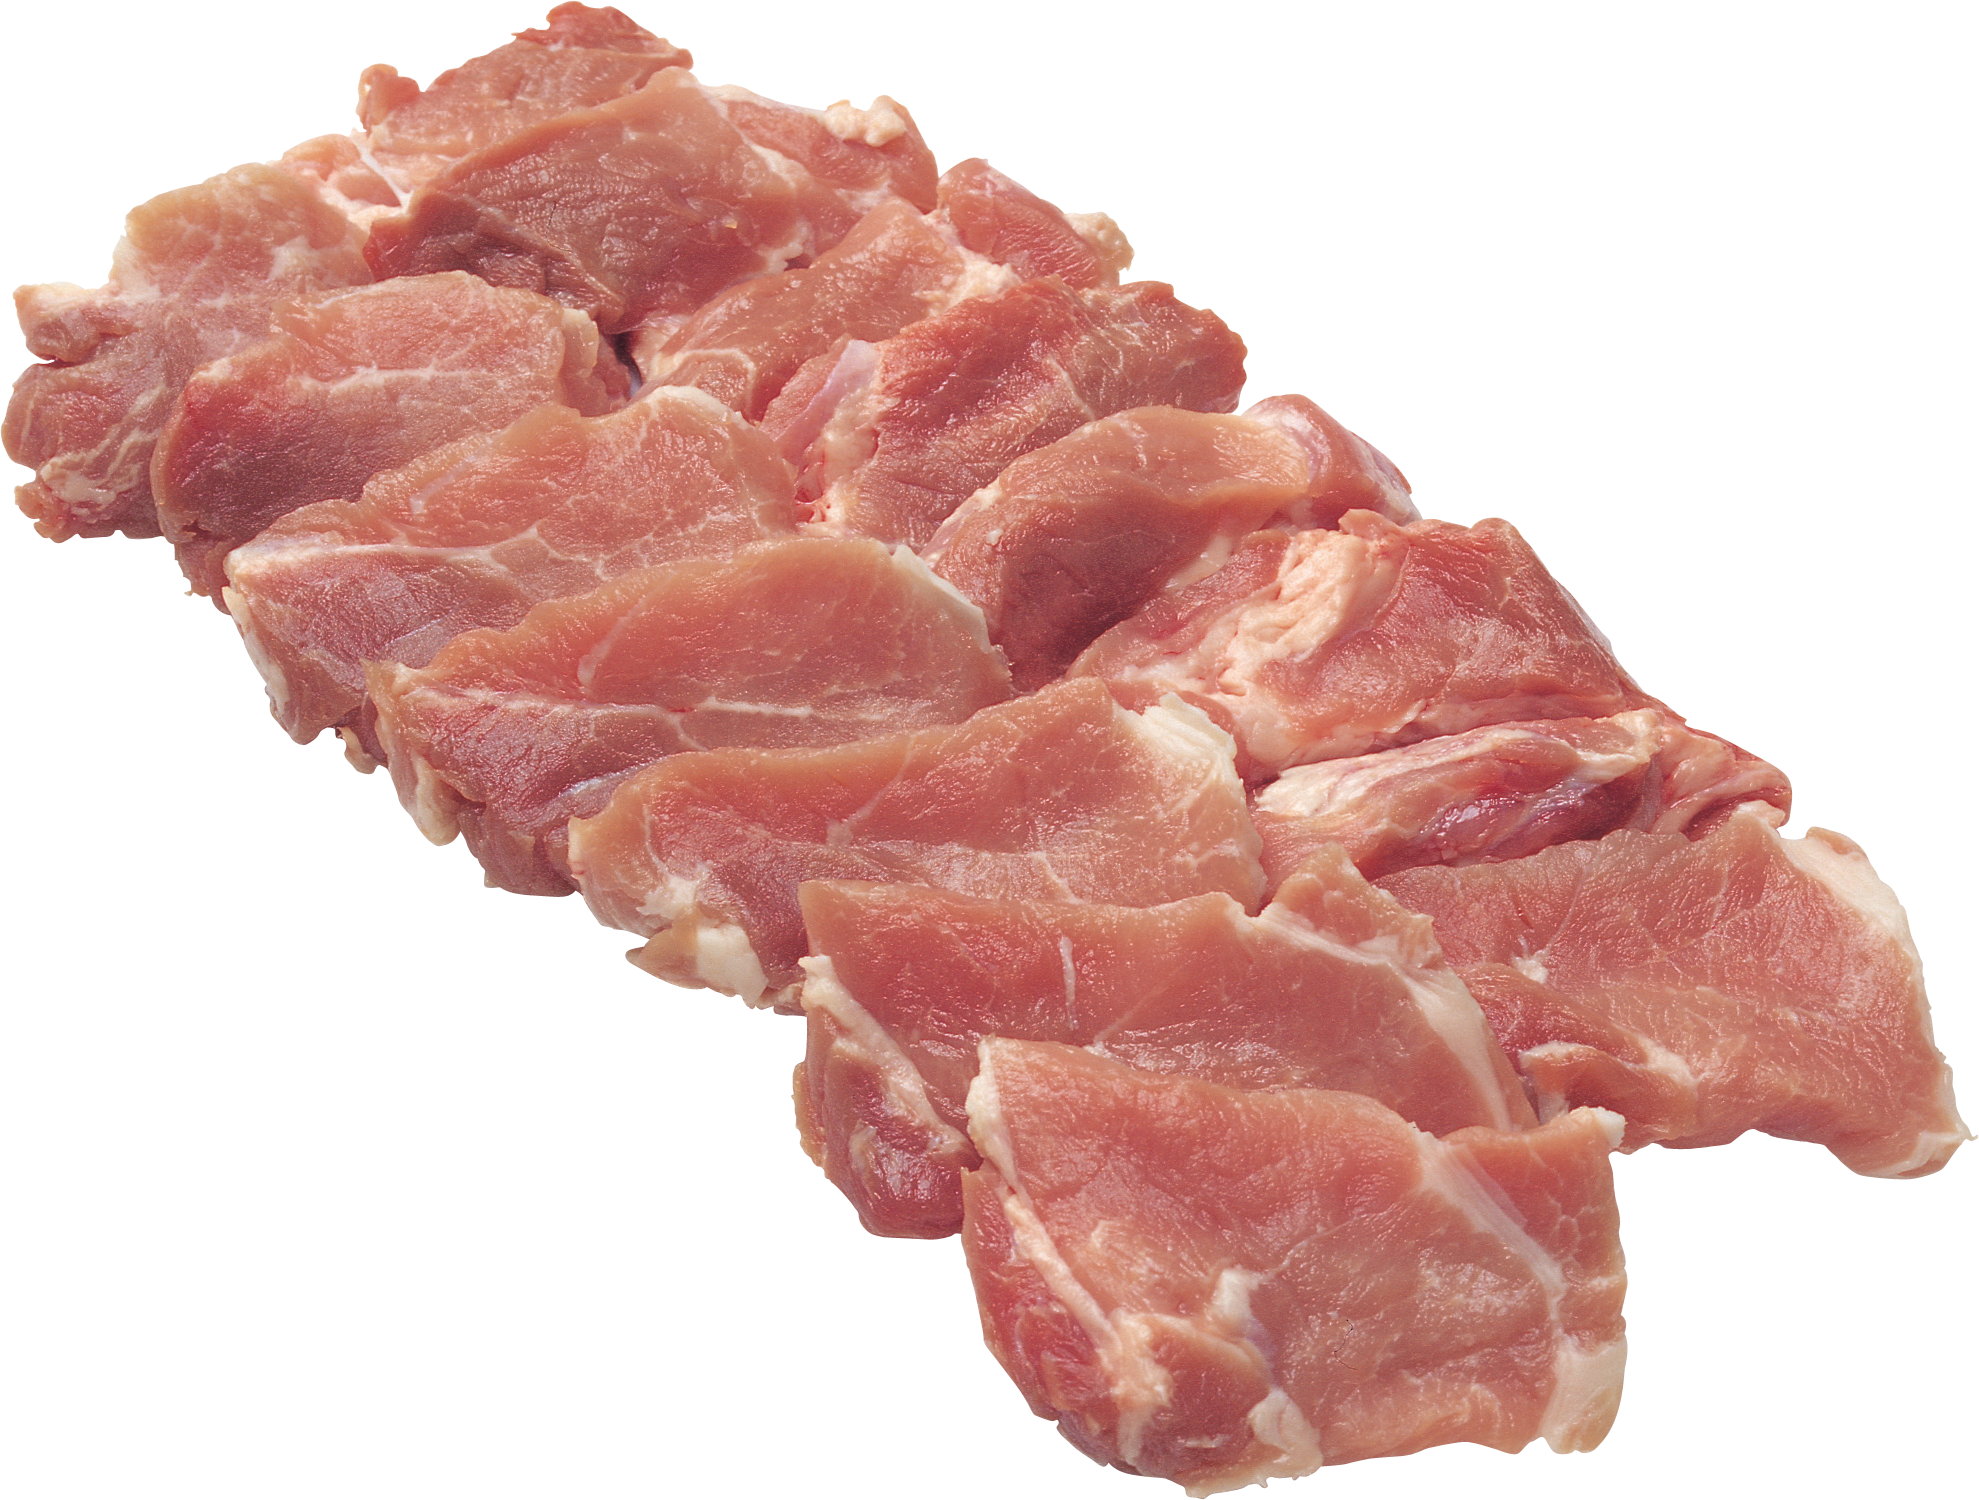 Meat PNG image, free meat PNG download image.